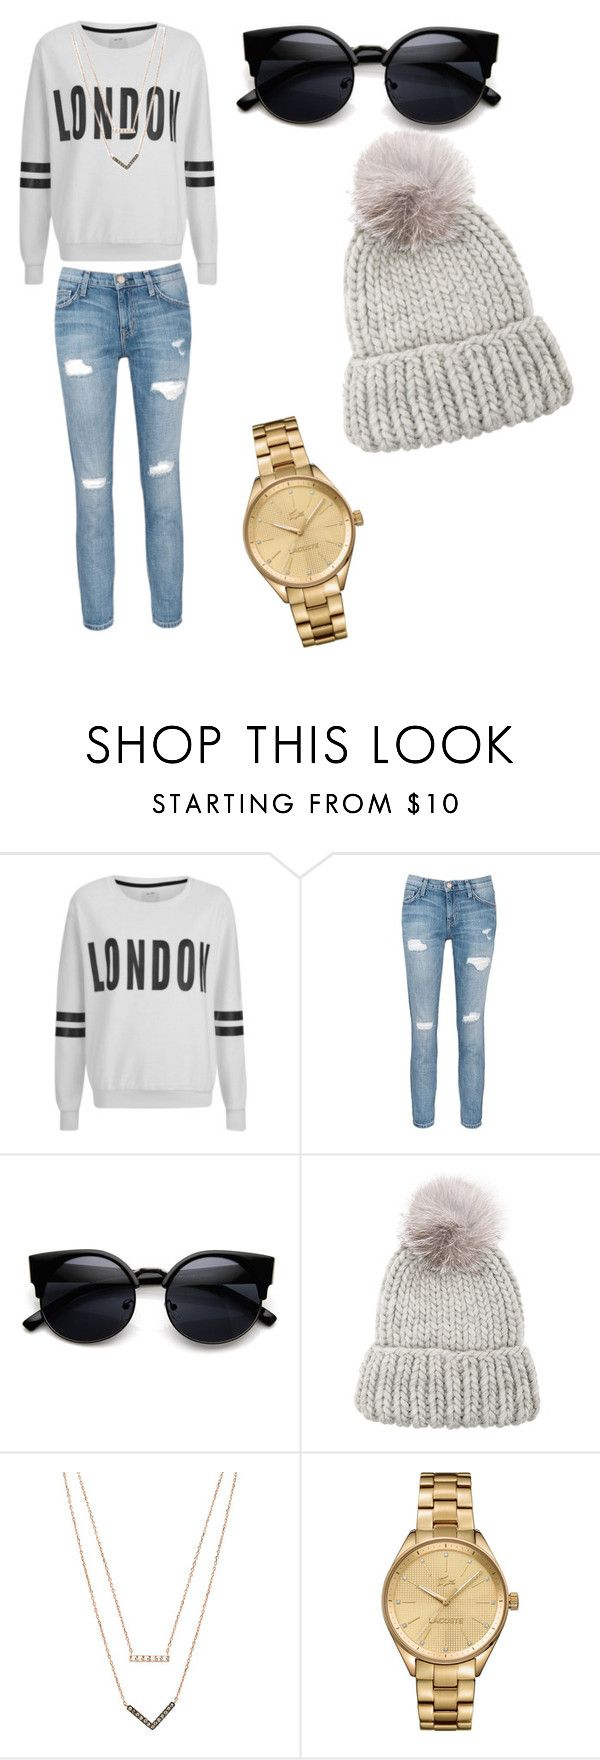 """""""Untitled #3"""" by maruv2005 ❤ liked on Polyvore featuring ONLY, Current/Elliott, Eugenia Kim, Michael Kors, Lacoste, women's clothing, women's fashion, women, female and woman"""